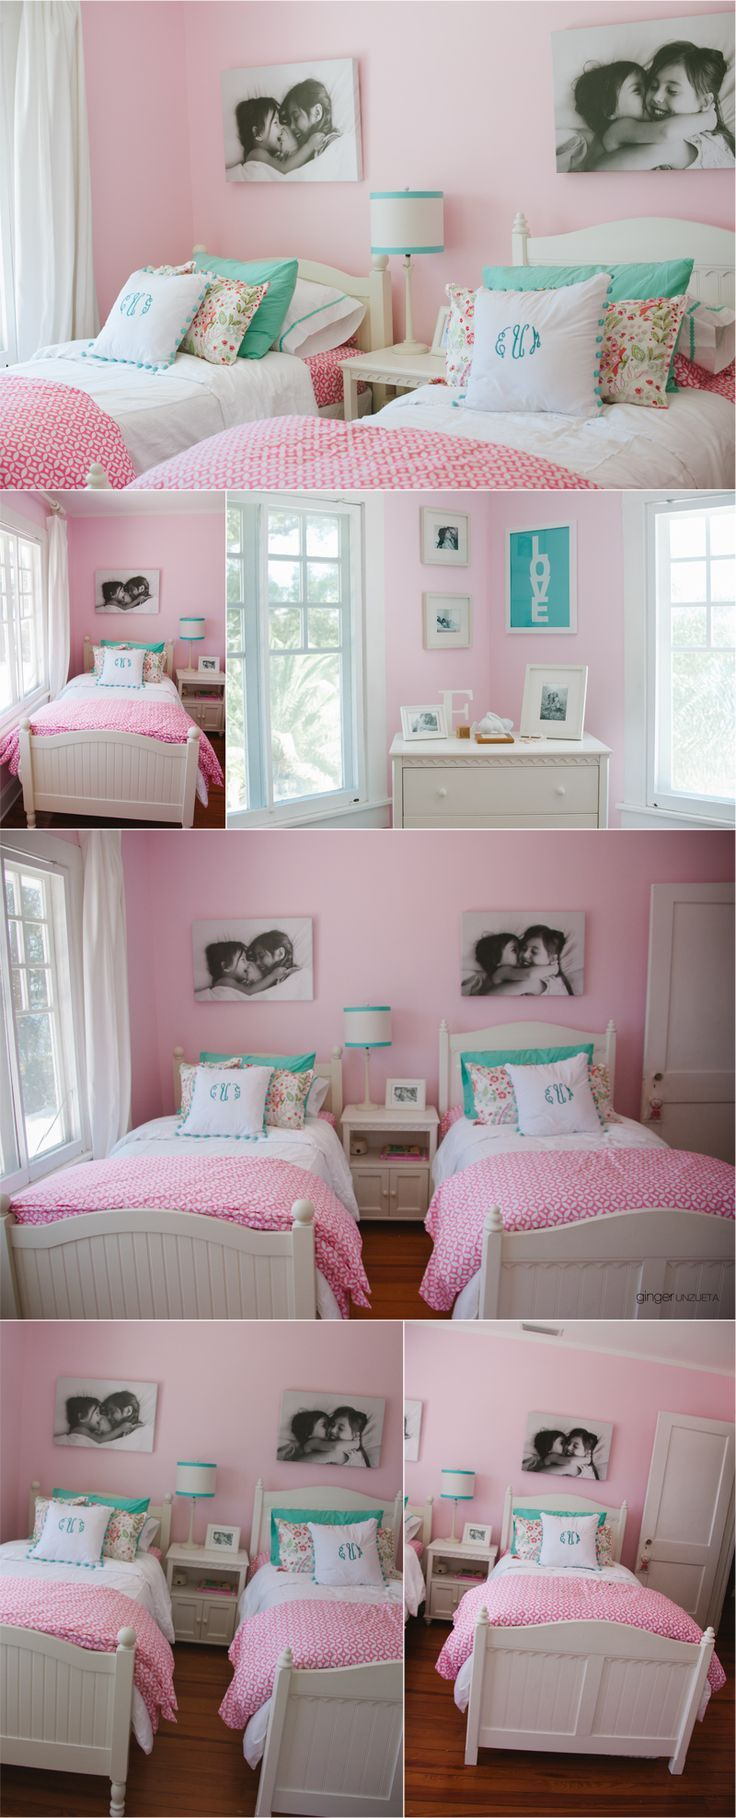 Such A Cute Shared Girls Room Maybe If My Sister And I Had A Room